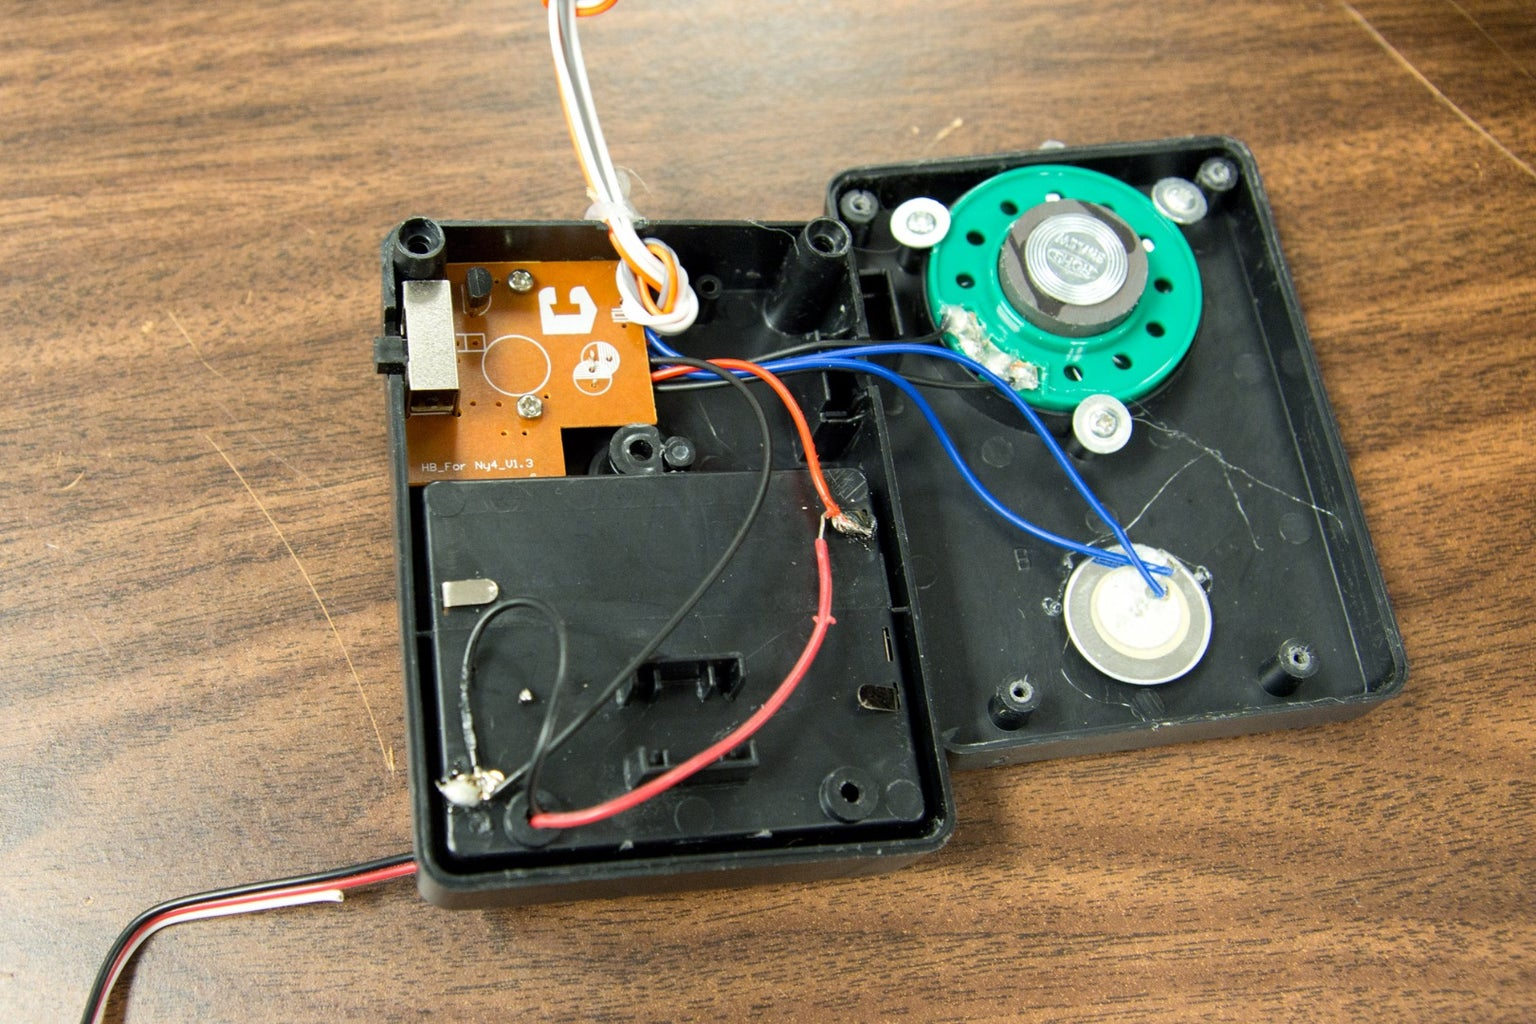 Wiring a RobotGeek Relay to Directly Power a Prop